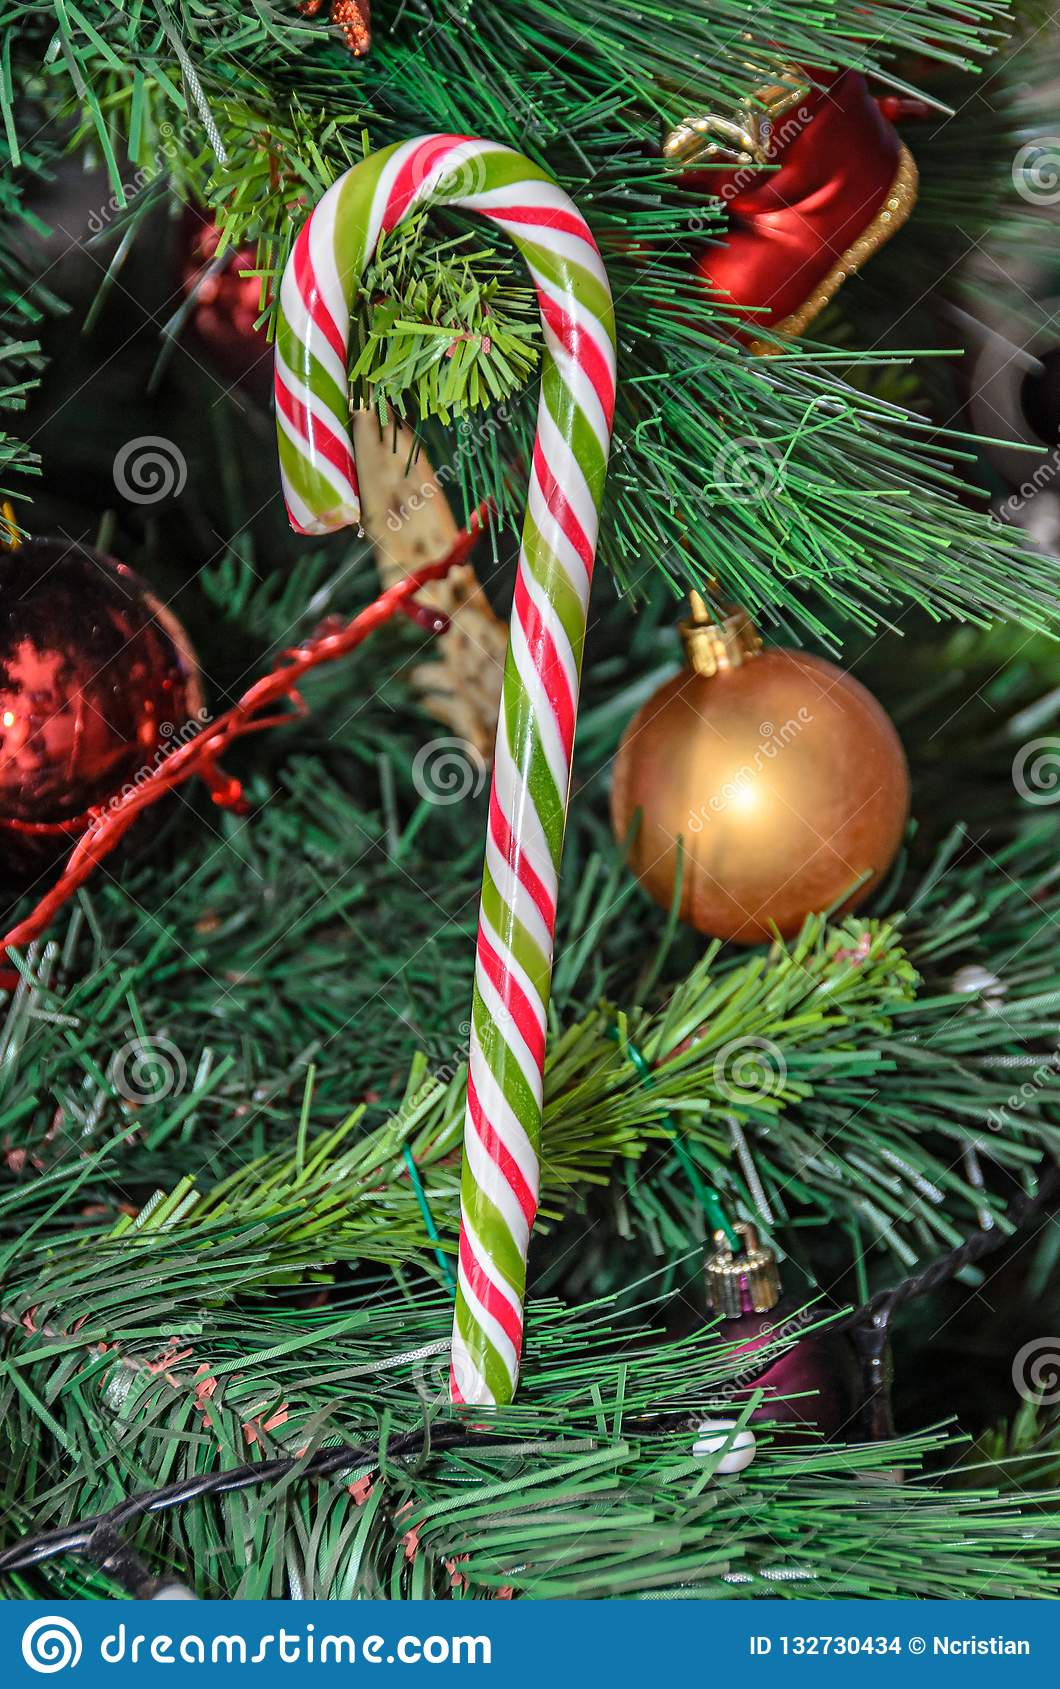 Christmas Tree Hanging Ornament Colored Lollipop Close Up Stock